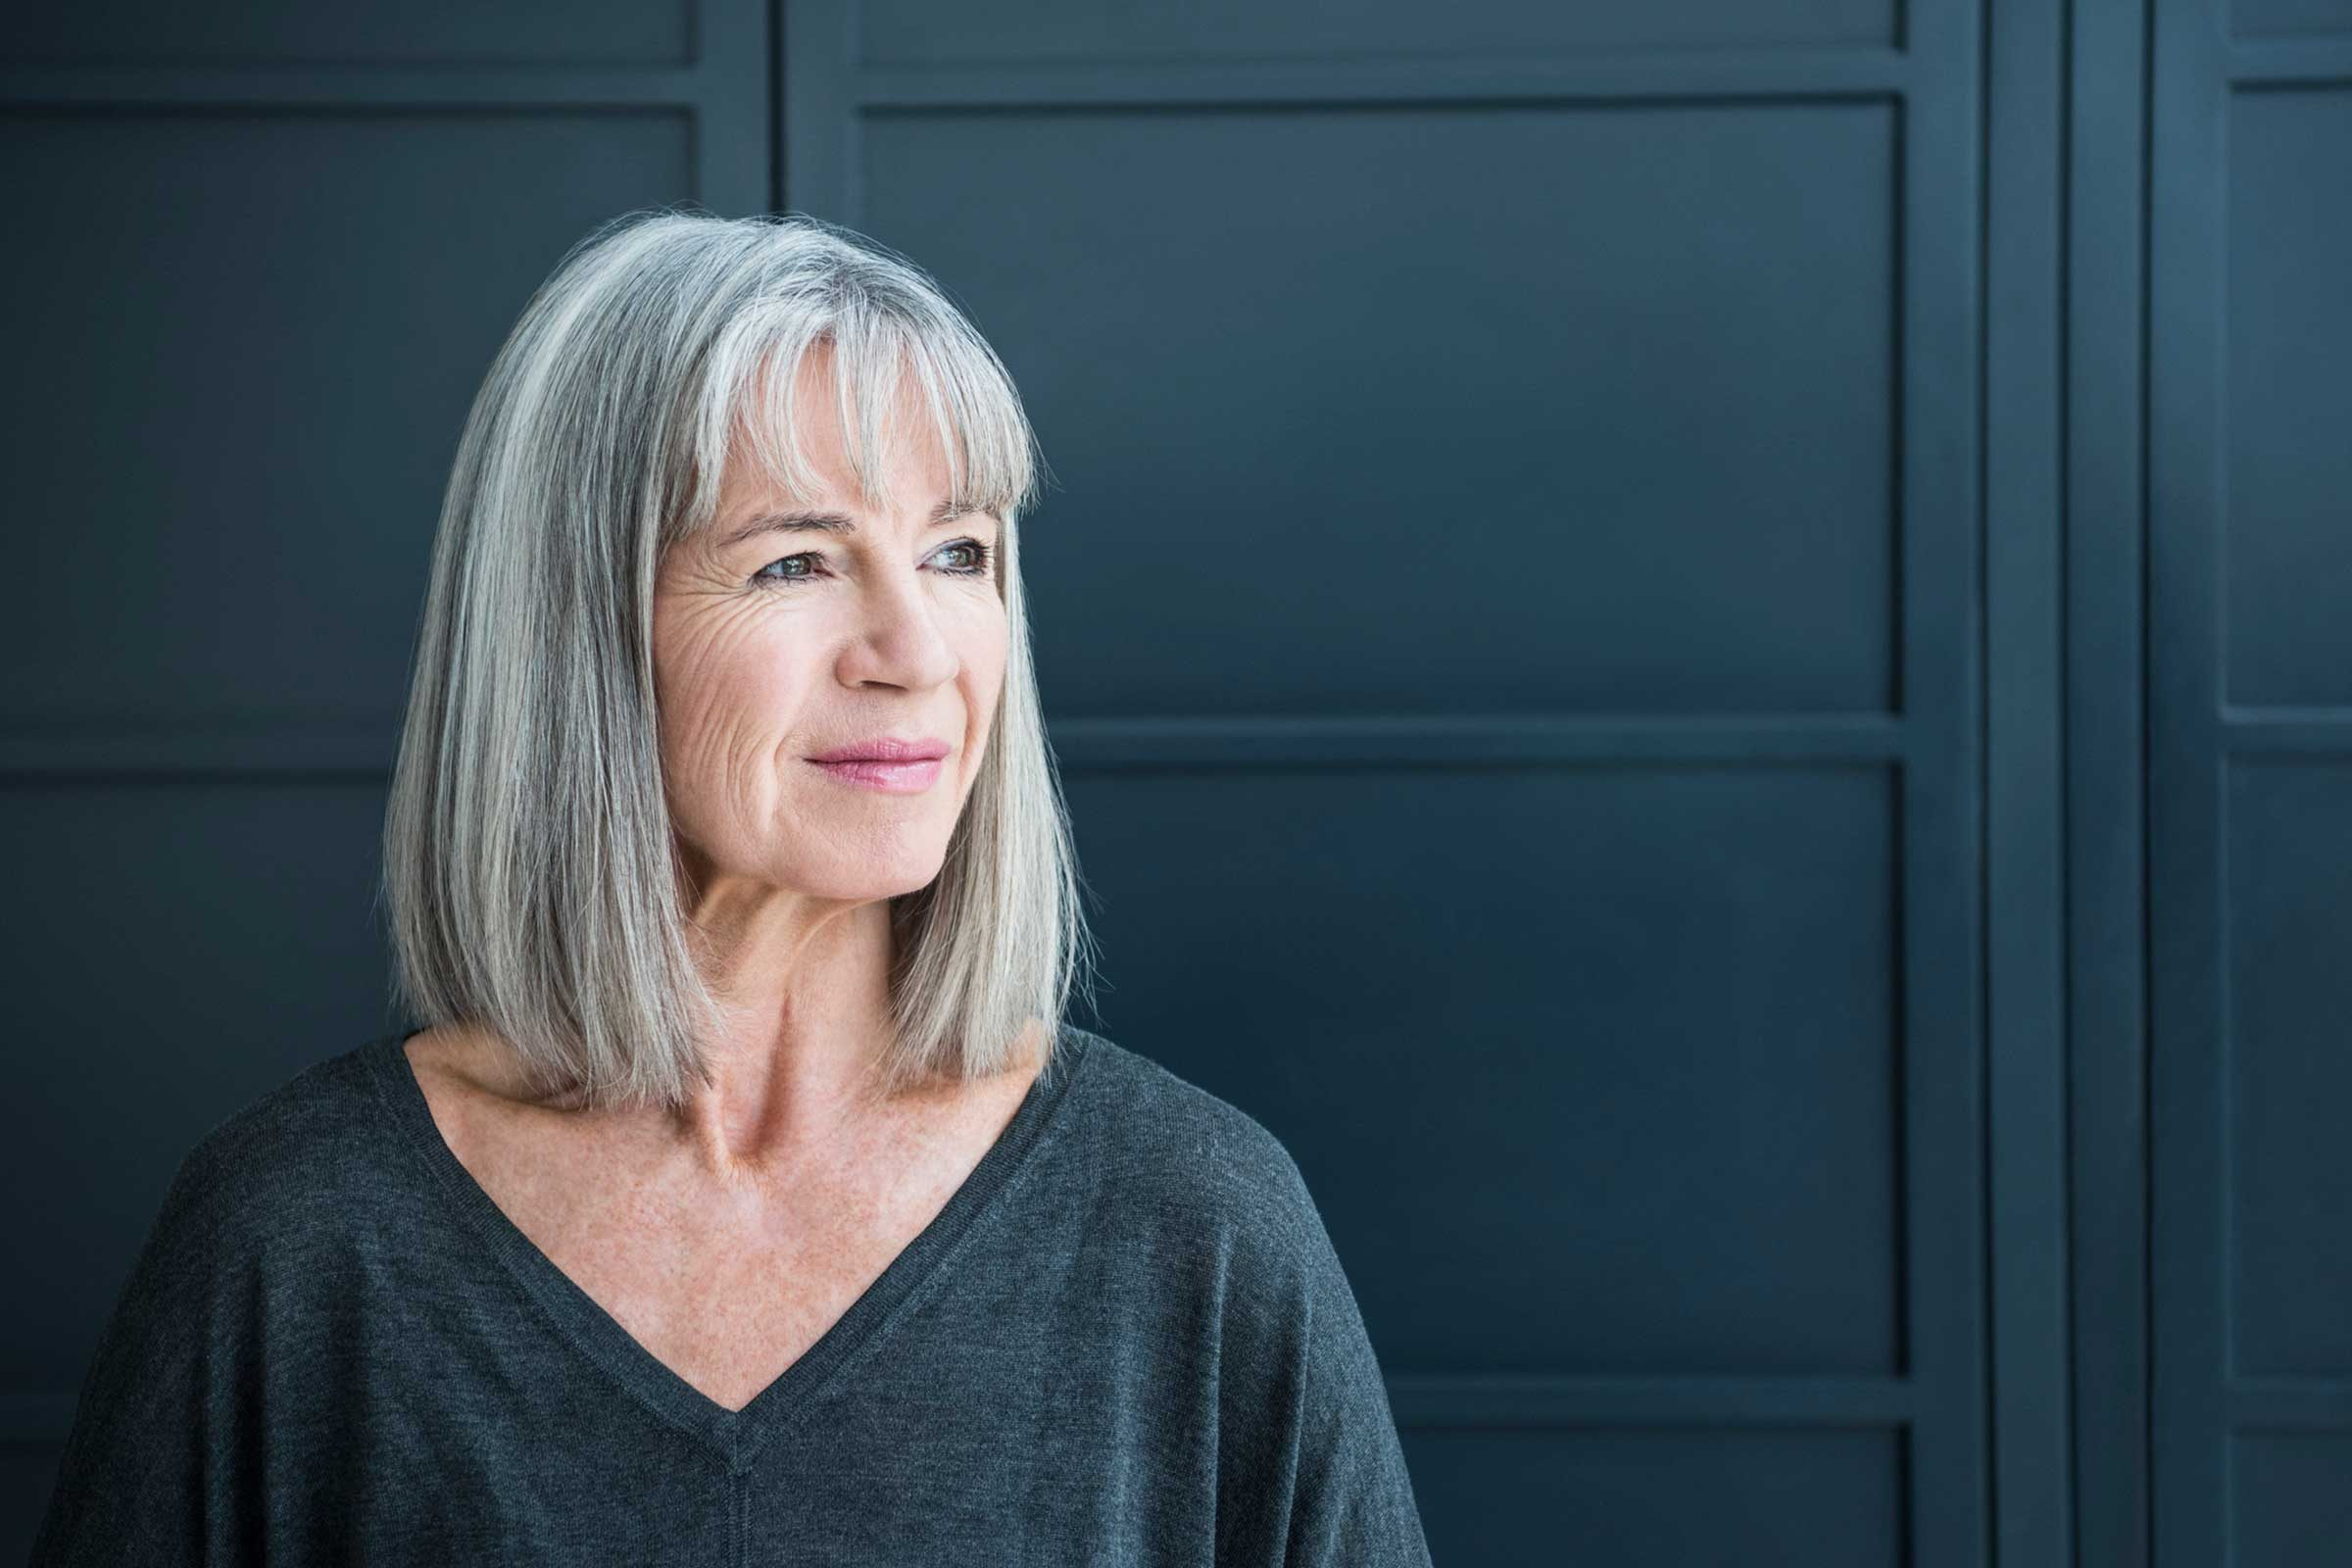 Gray Hair Color: What Happens When You Go Gray | Reader\'s Digest